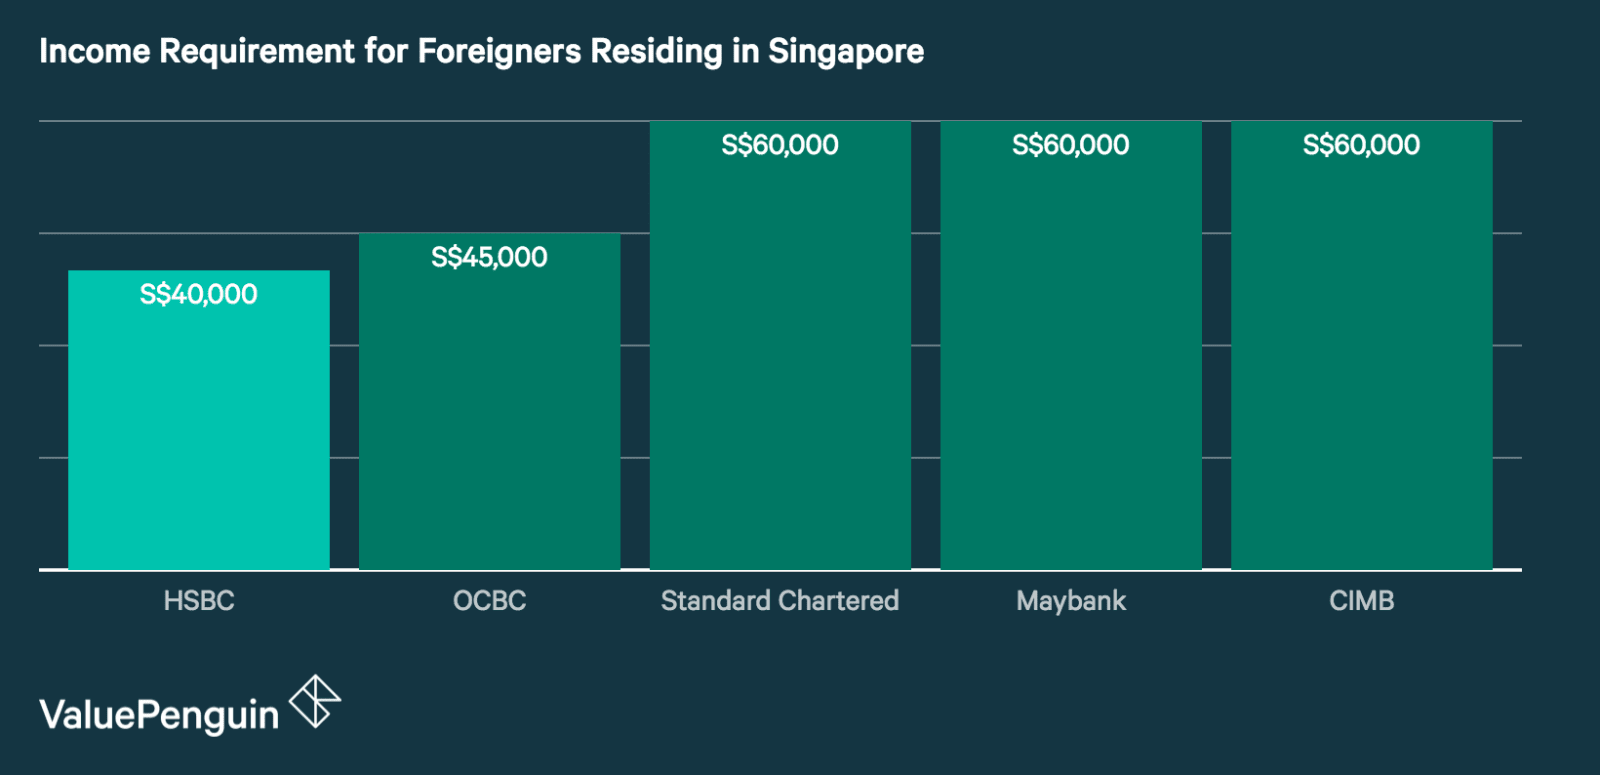 Income Requirement for Foreigners Residing in Singapore